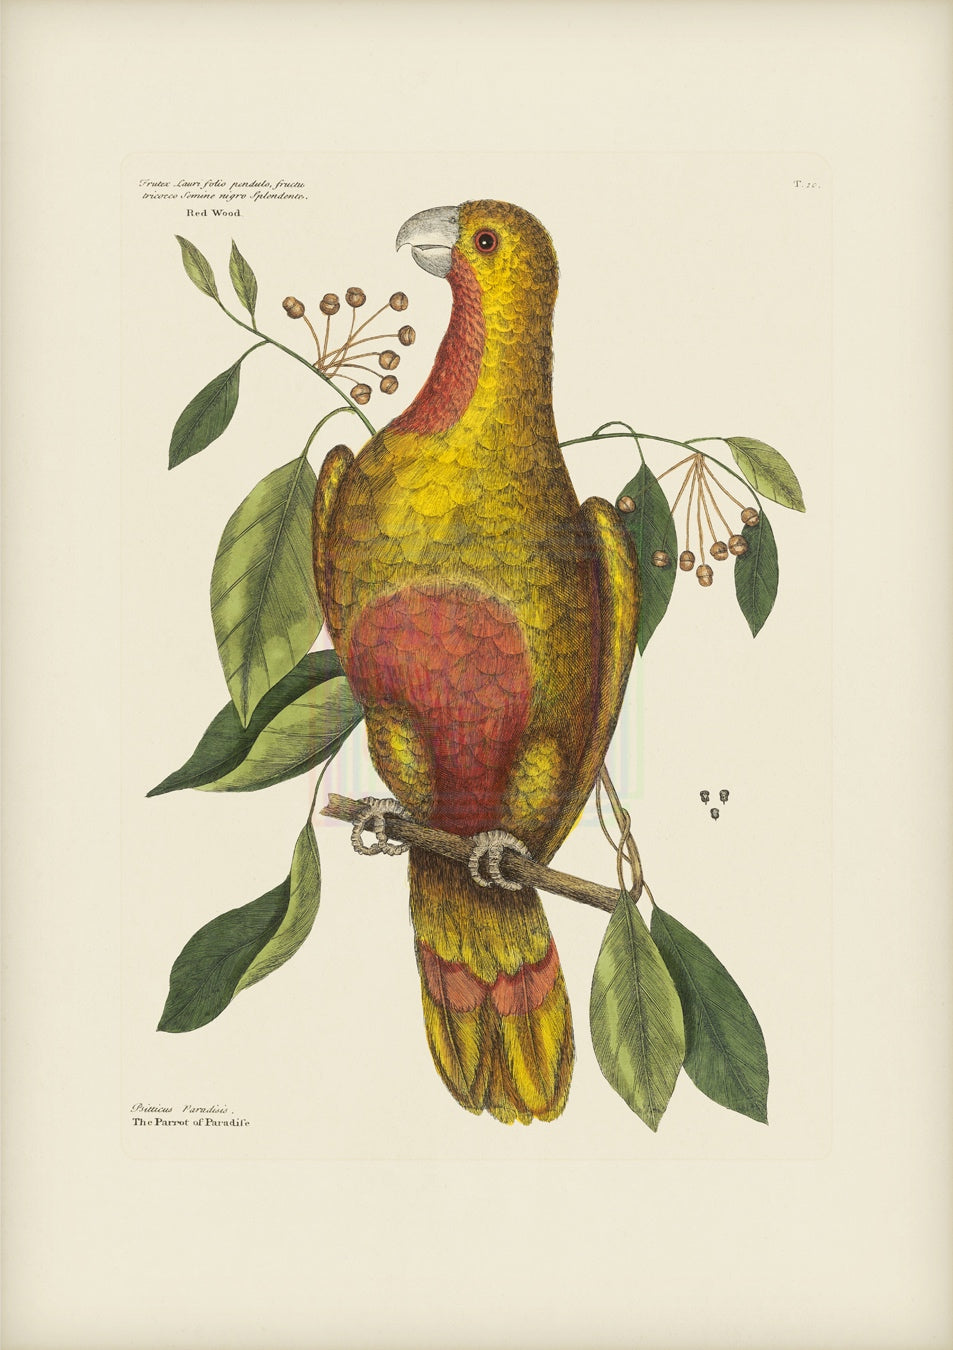 Mark Catesby Print, Parrot of Paradise or Red Wood - Plate 10